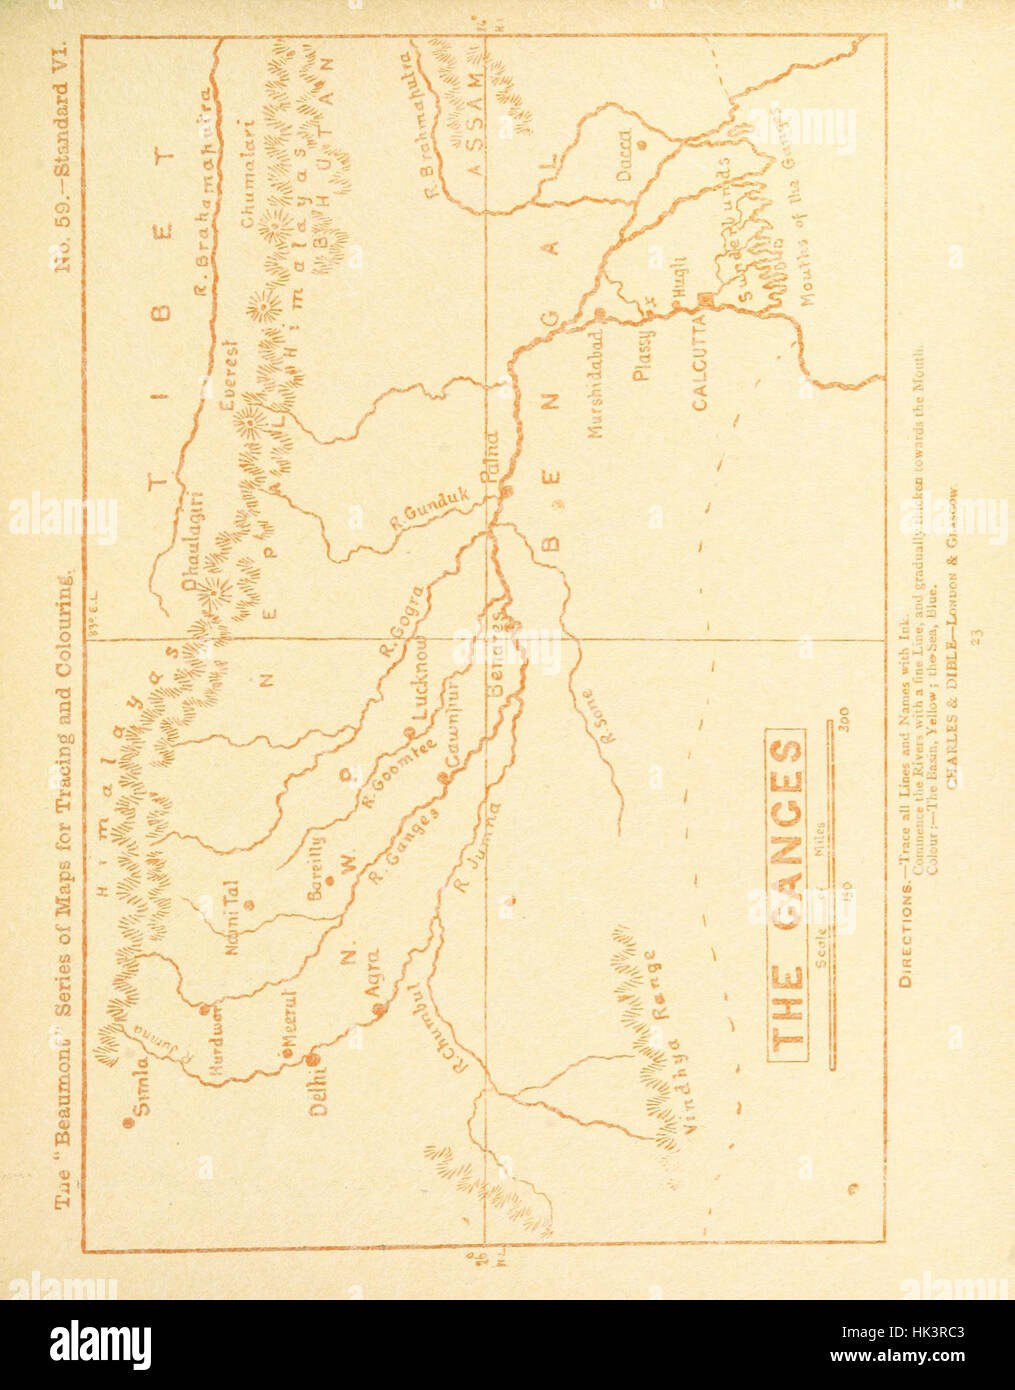 """Image taken from page 167 of 'The """"Beaumont"""" Geography and Map Tracing Book' Image taken from page 167 of - Stock Image"""